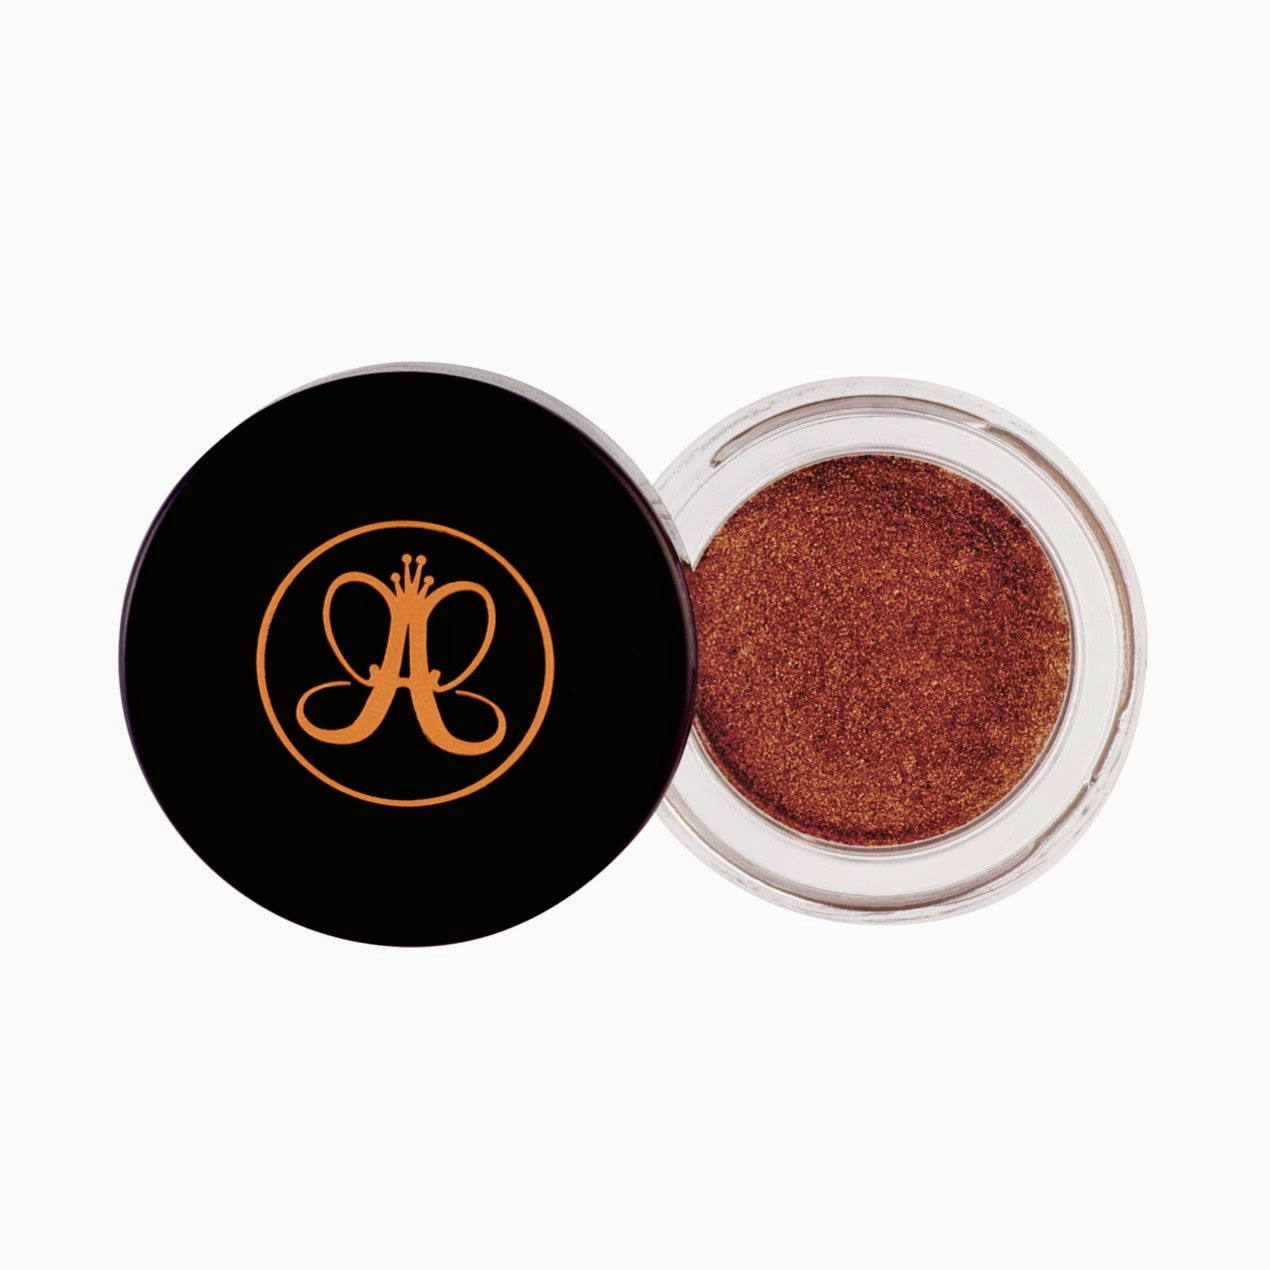 Anastasia Beverly Hills Waterproof Creme Color Lavish